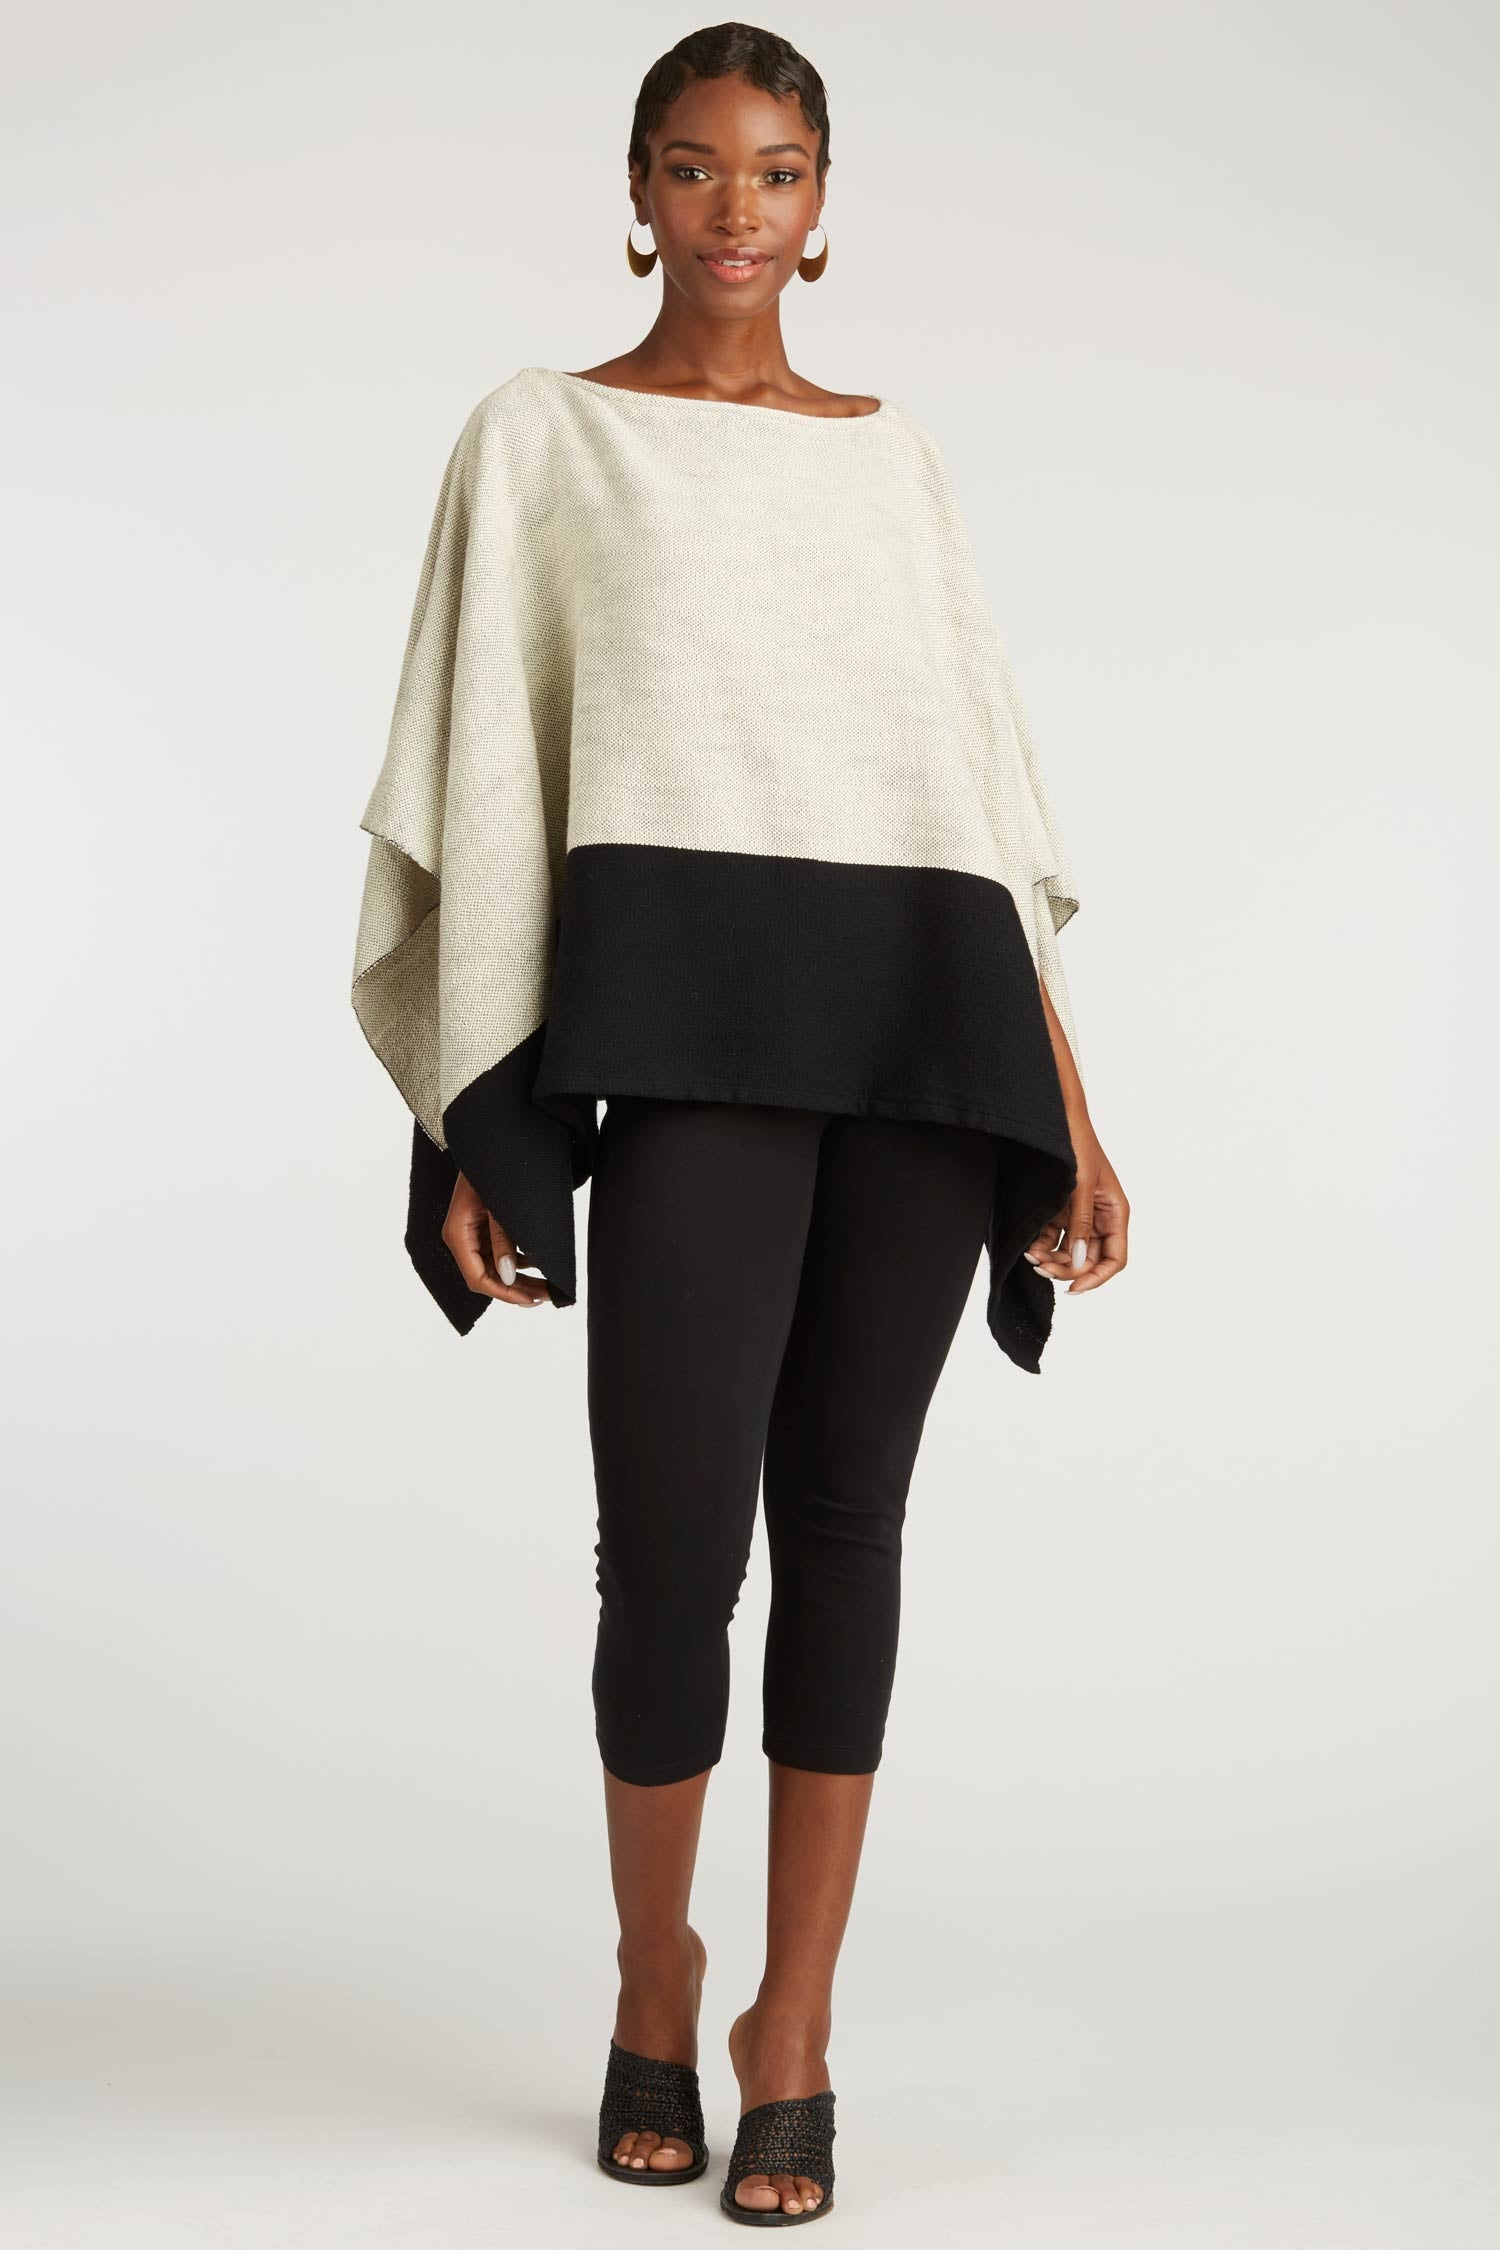 Womens Woven Poncho | Organic Cotton Clothing | Fair Trade